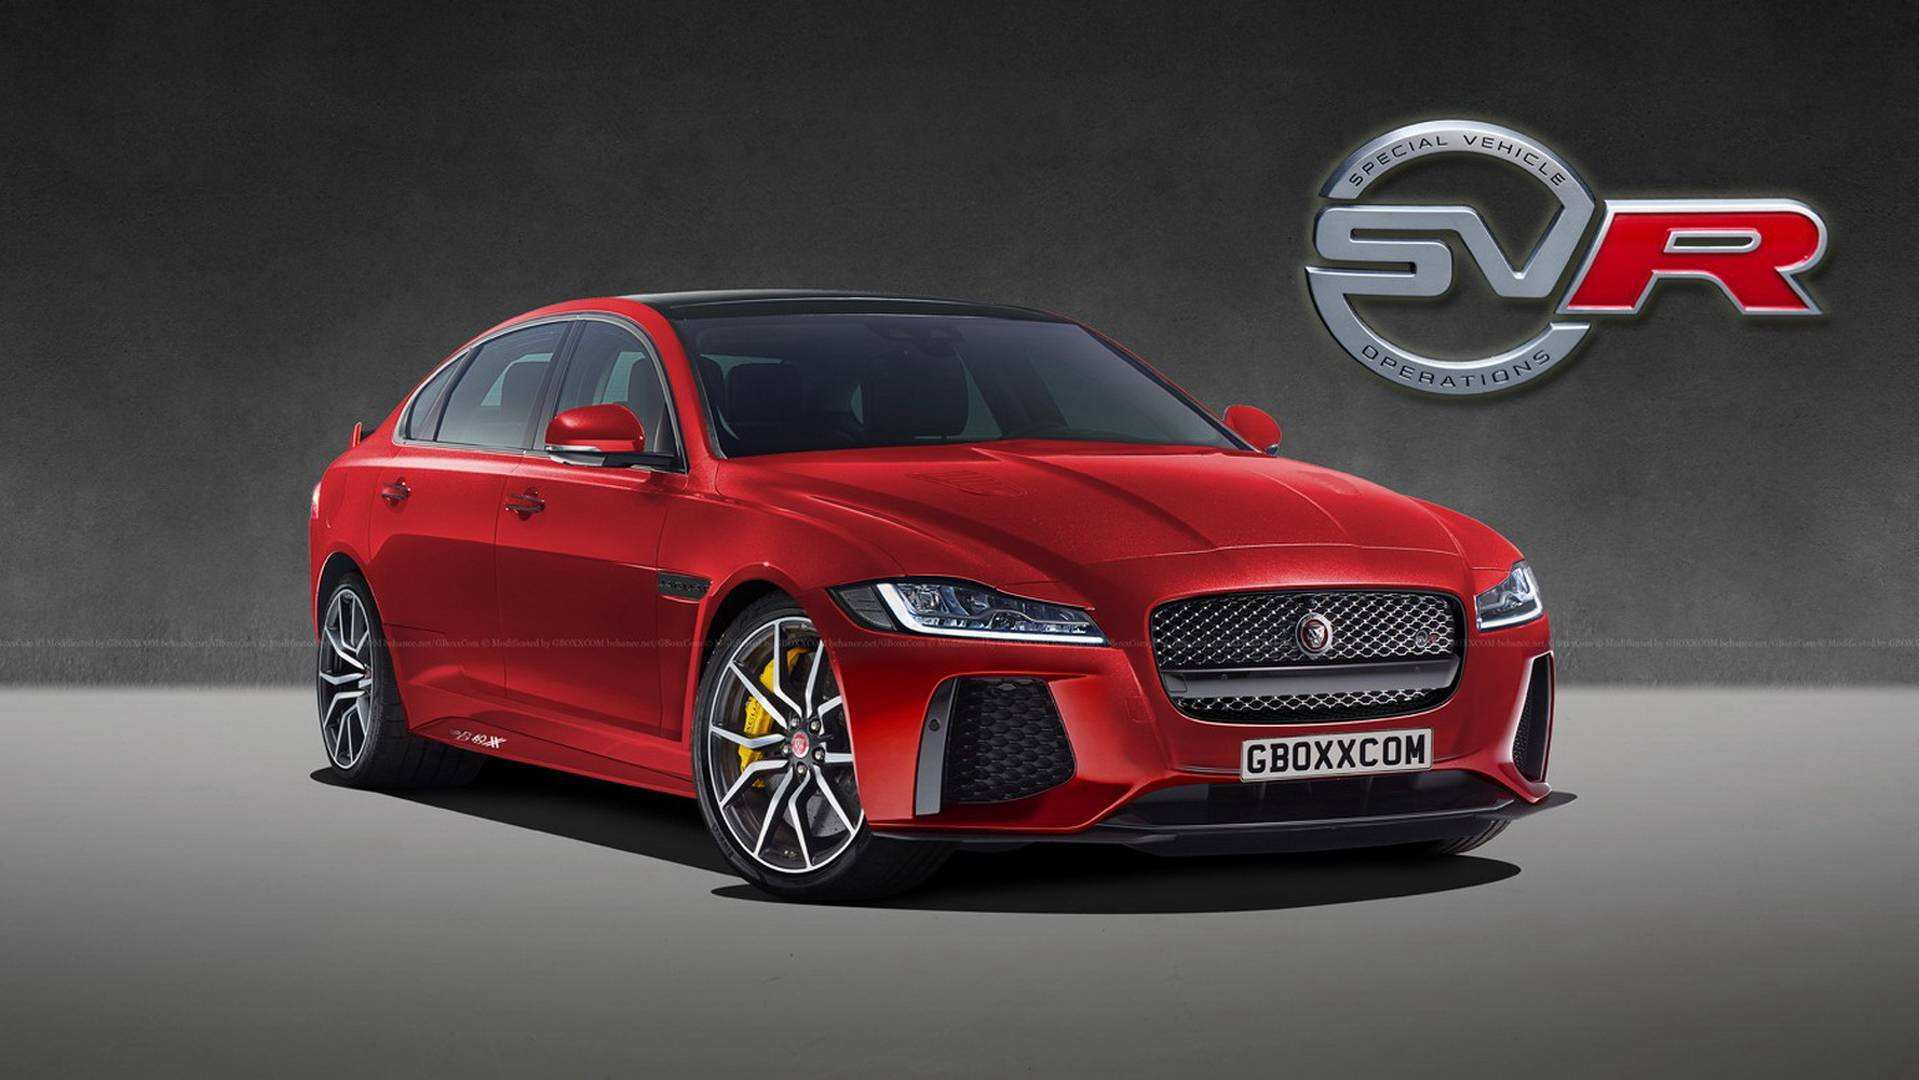 61 Great 2019 Jaguar Xe Svr Prices with 2019 Jaguar Xe Svr